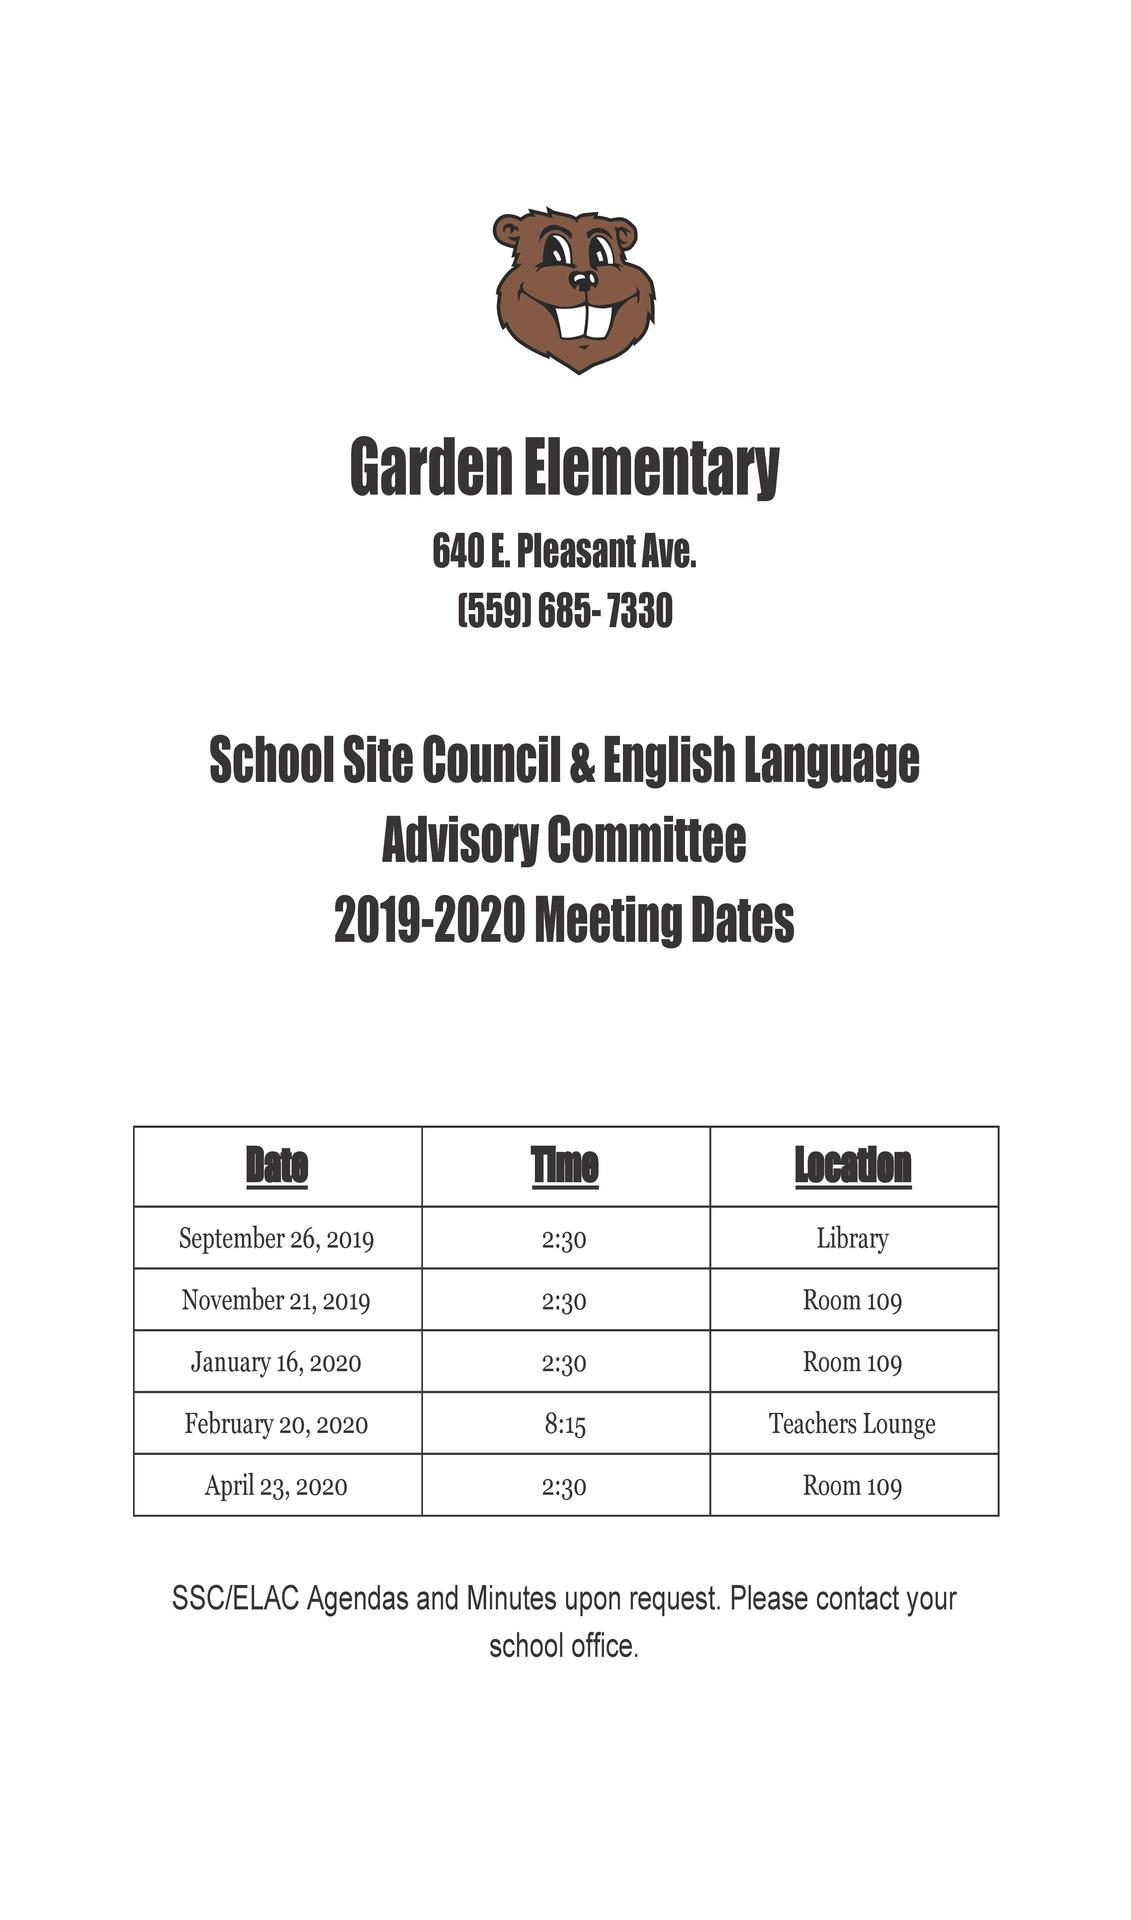 19-20 SSC/ELAC Meeting Dates